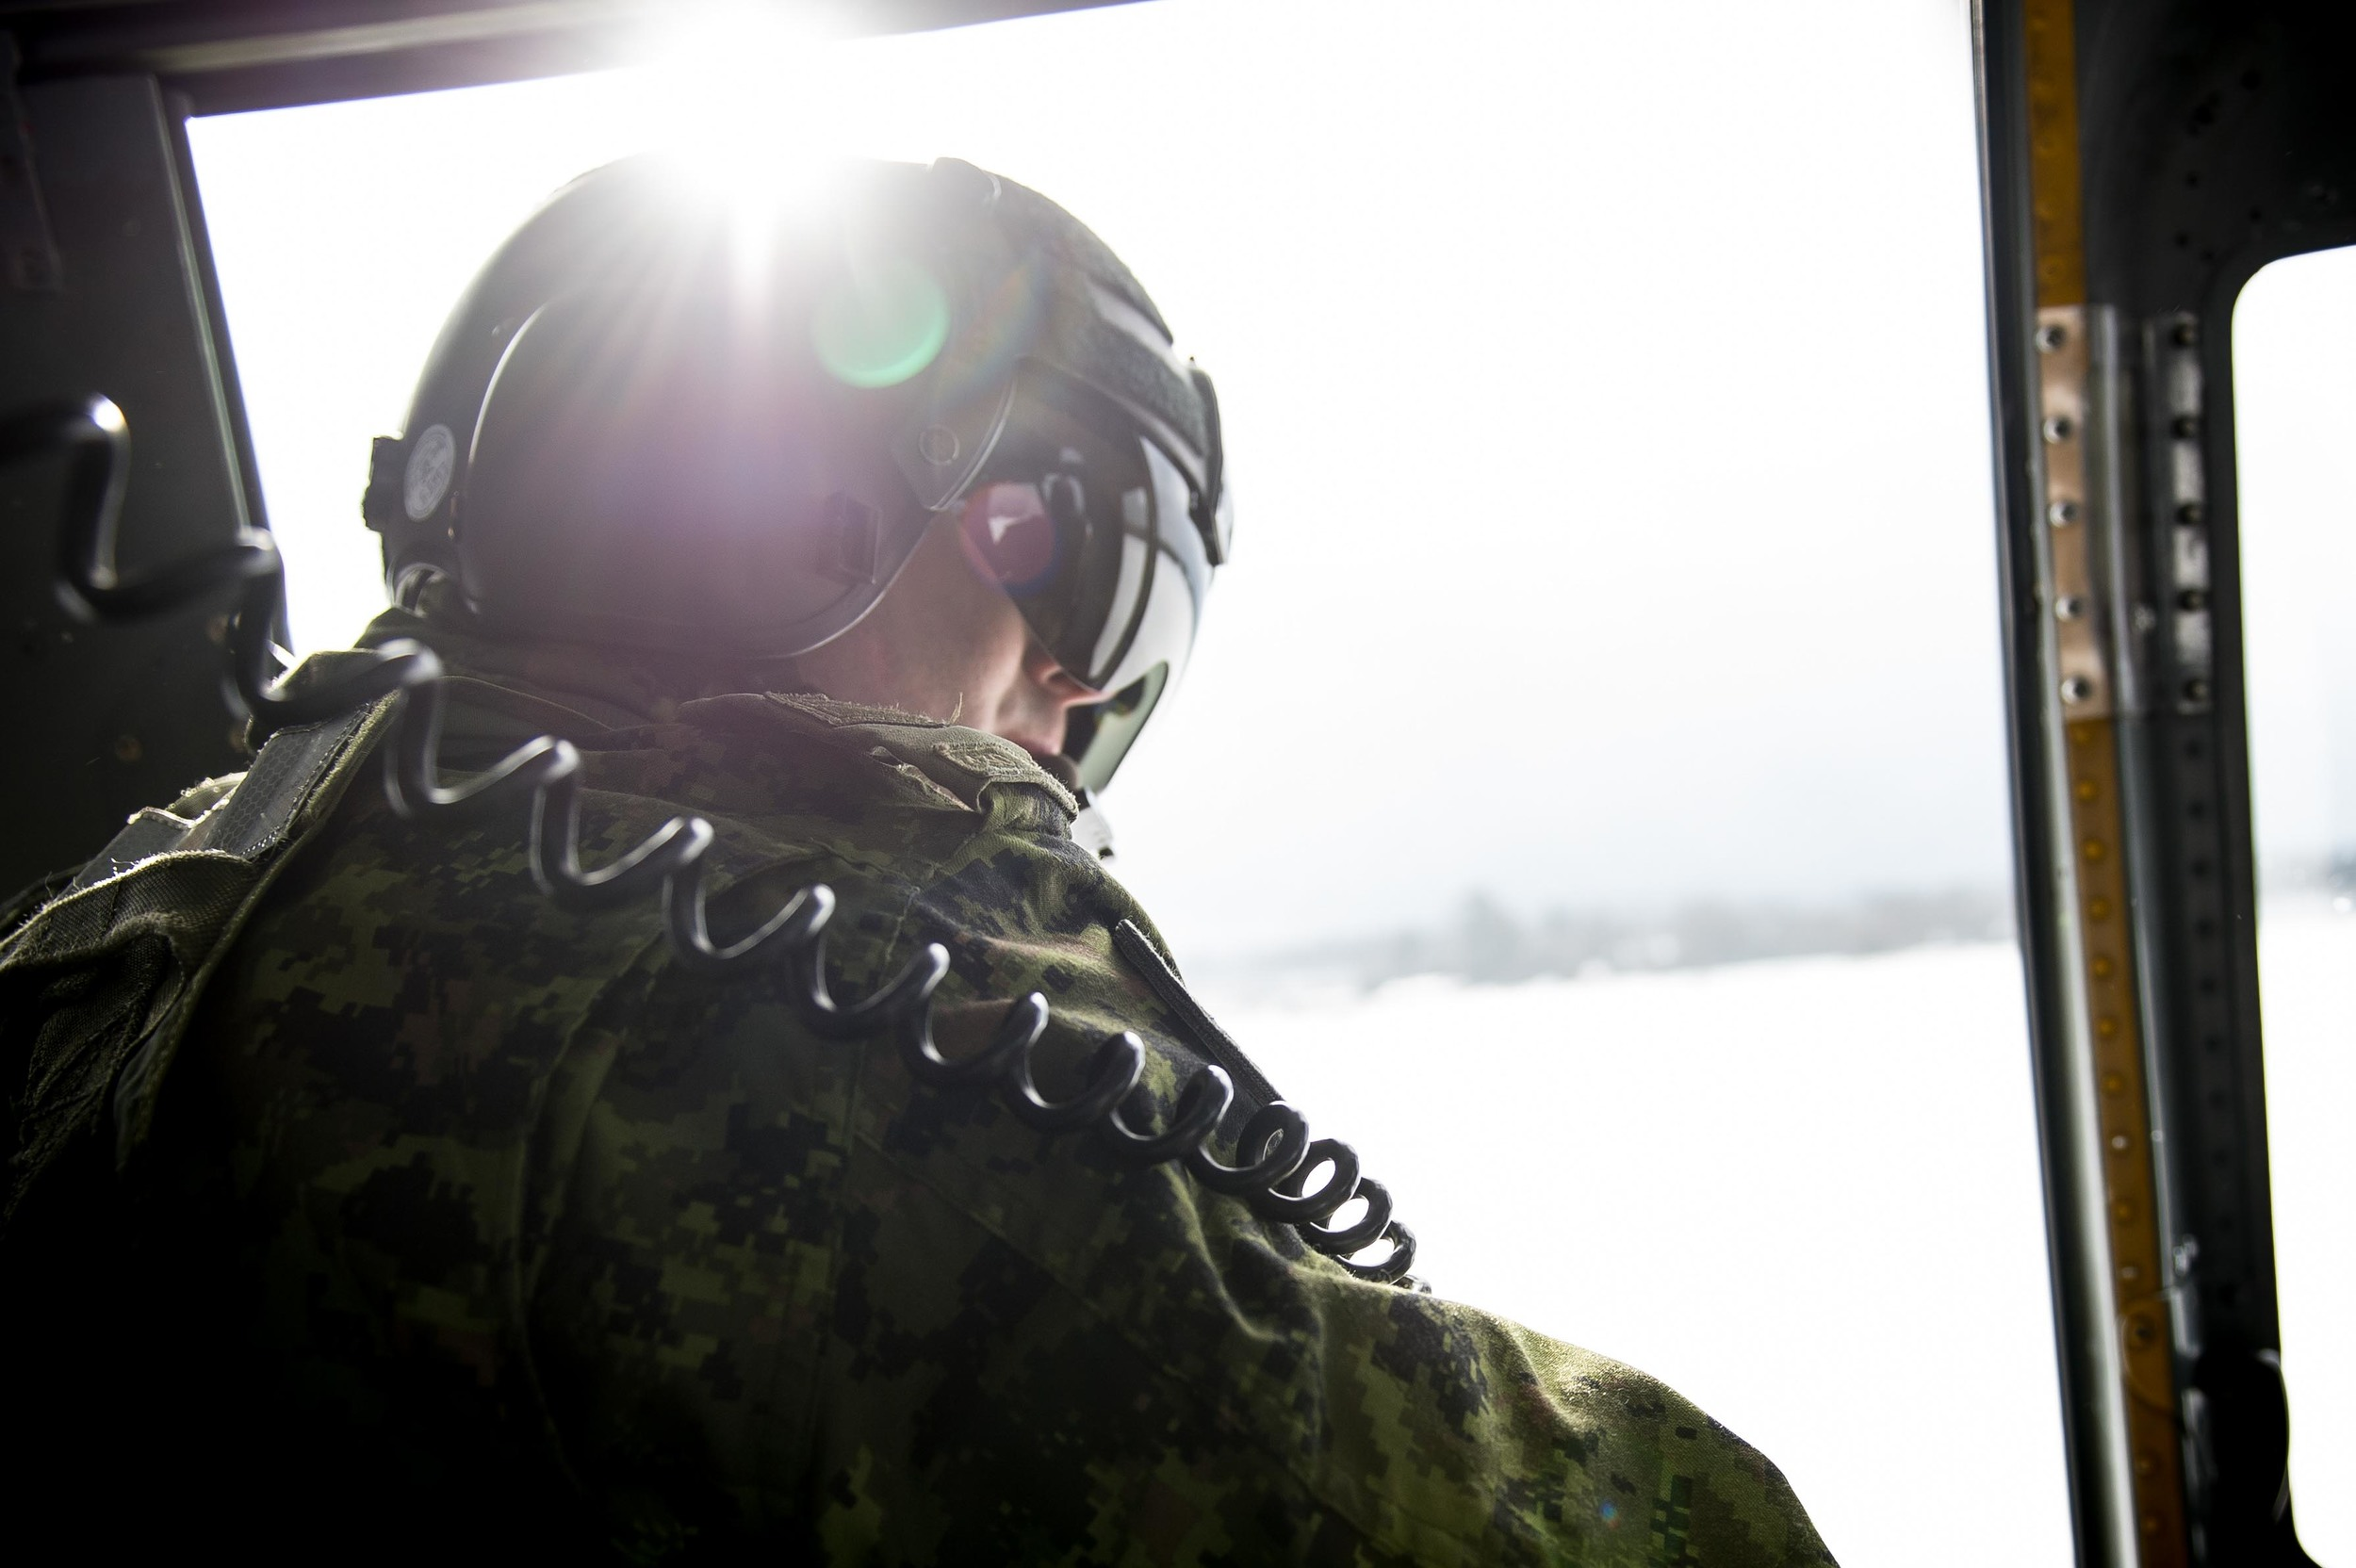 Photo Credit: Cpl Andrew Wesley Canadian Armed Forces © DND-MDN 2016 Settings: F/2.8, 1/640, ISO 160 Equipment: Nikon D4, 24-70mm F/2.8 (Set wide open at 24mm)